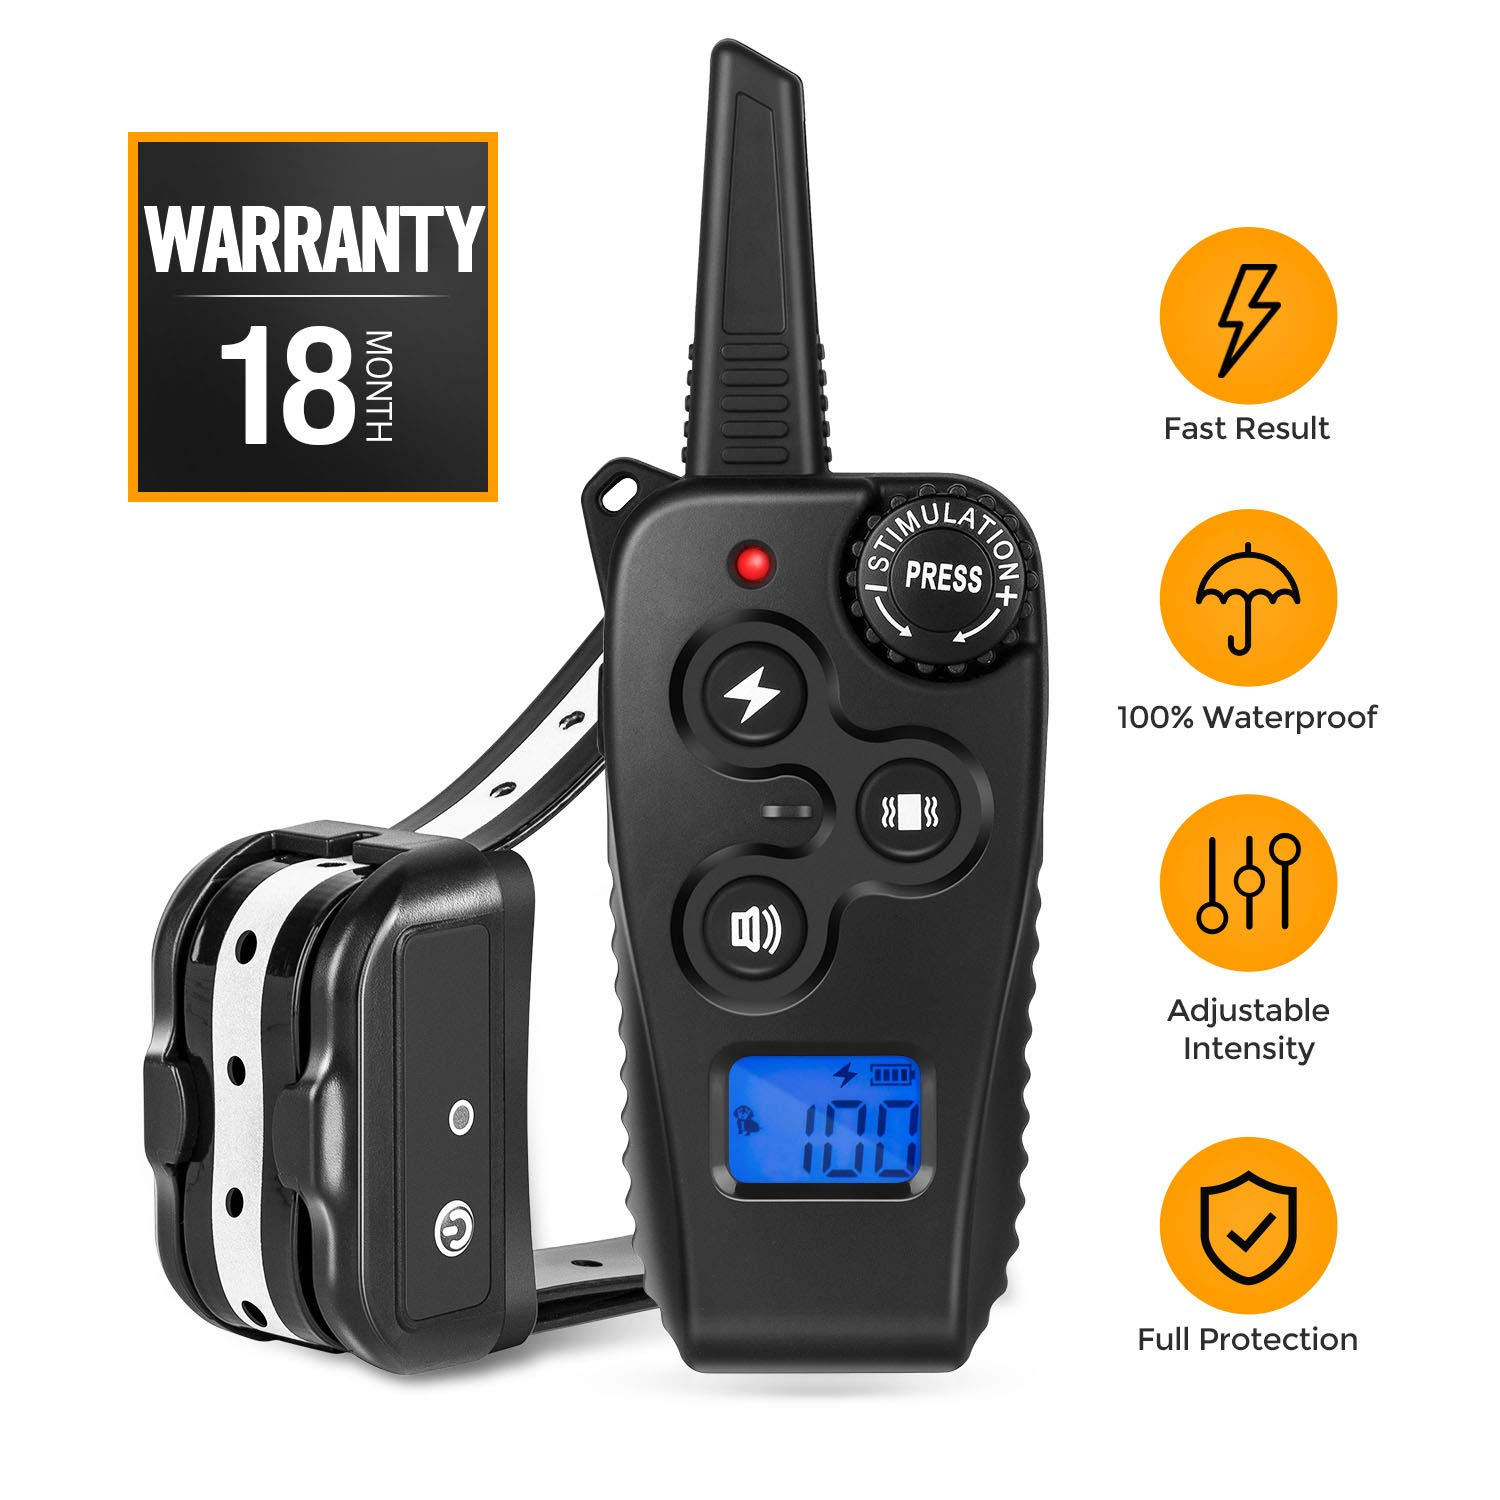 2019 Newest Dog Training Collar, Remote Shock Collar with Beep Vibration Shock 1-100 Adjustable Levels 1640FT Remote Range, Rechargeable 100% Waterproof Dog Shock Collar for Small Medium Large Dogs